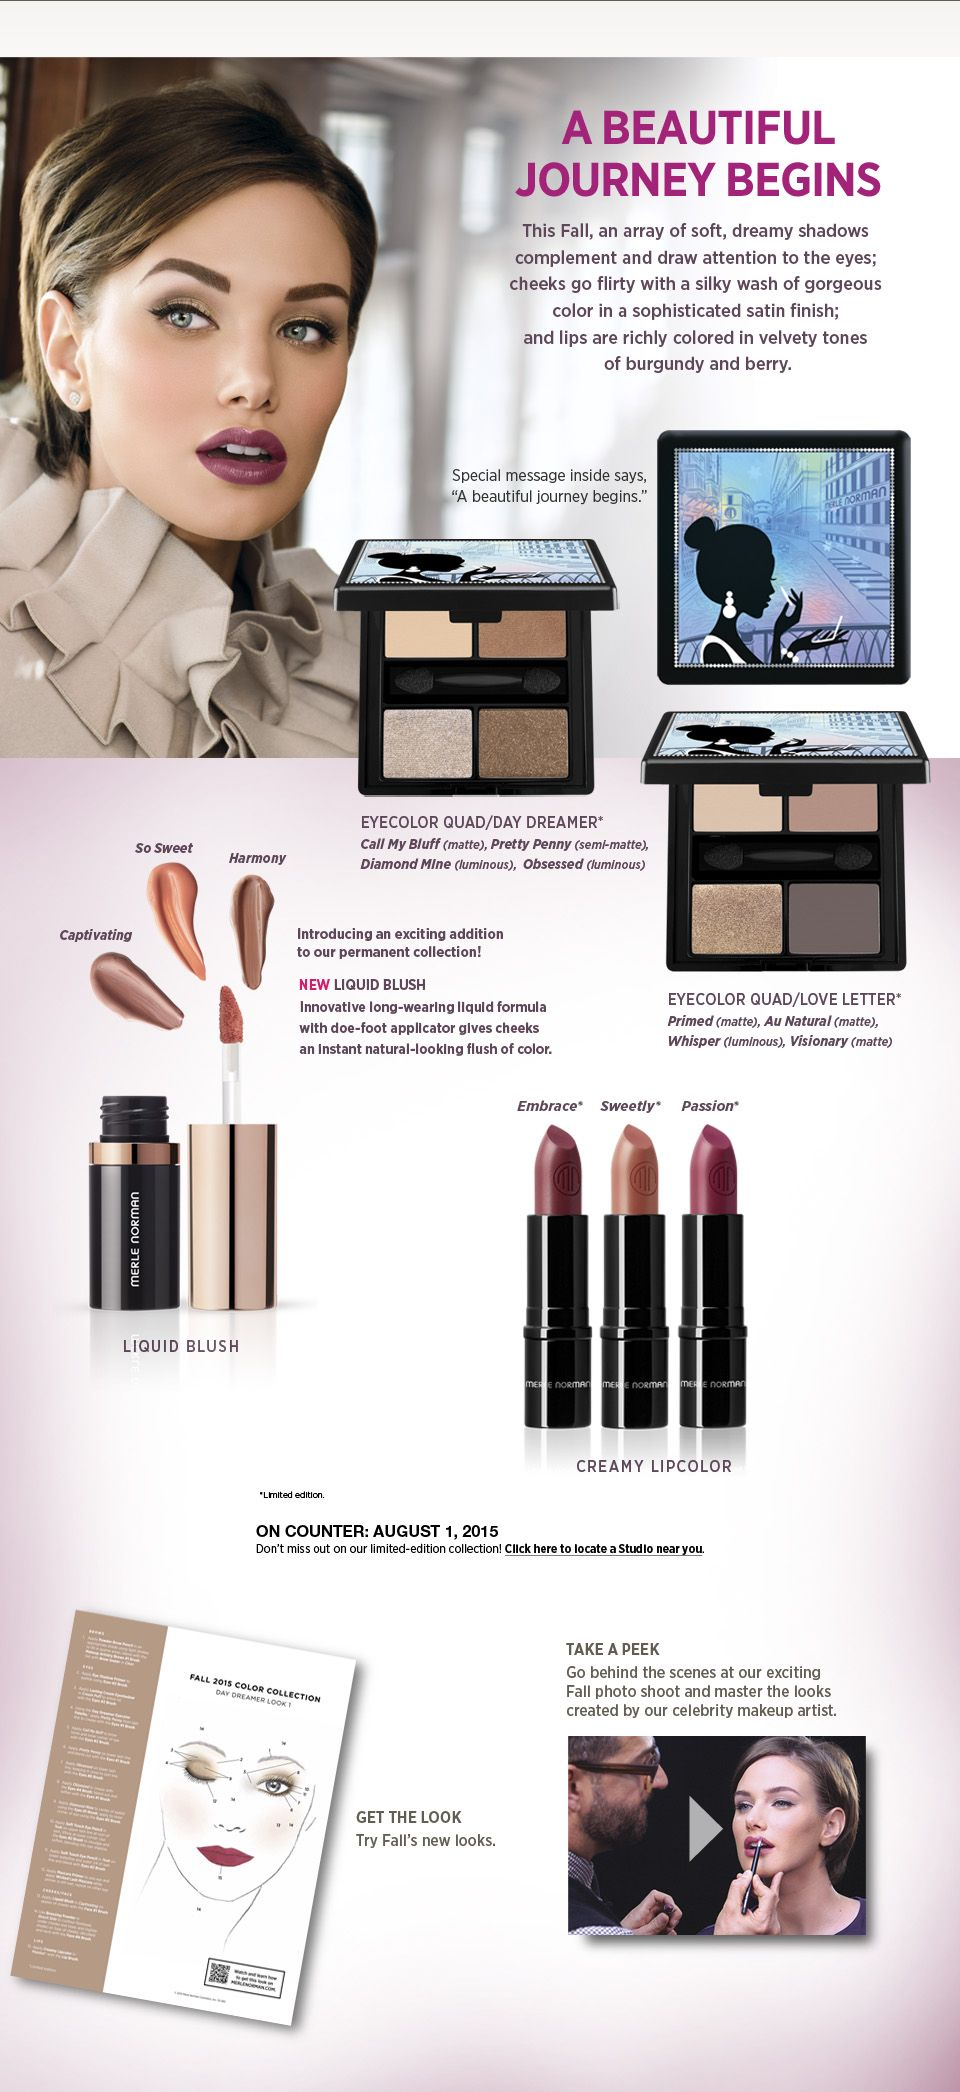 Beauty Color Collection / Merle Norman Cosmetics Beauty